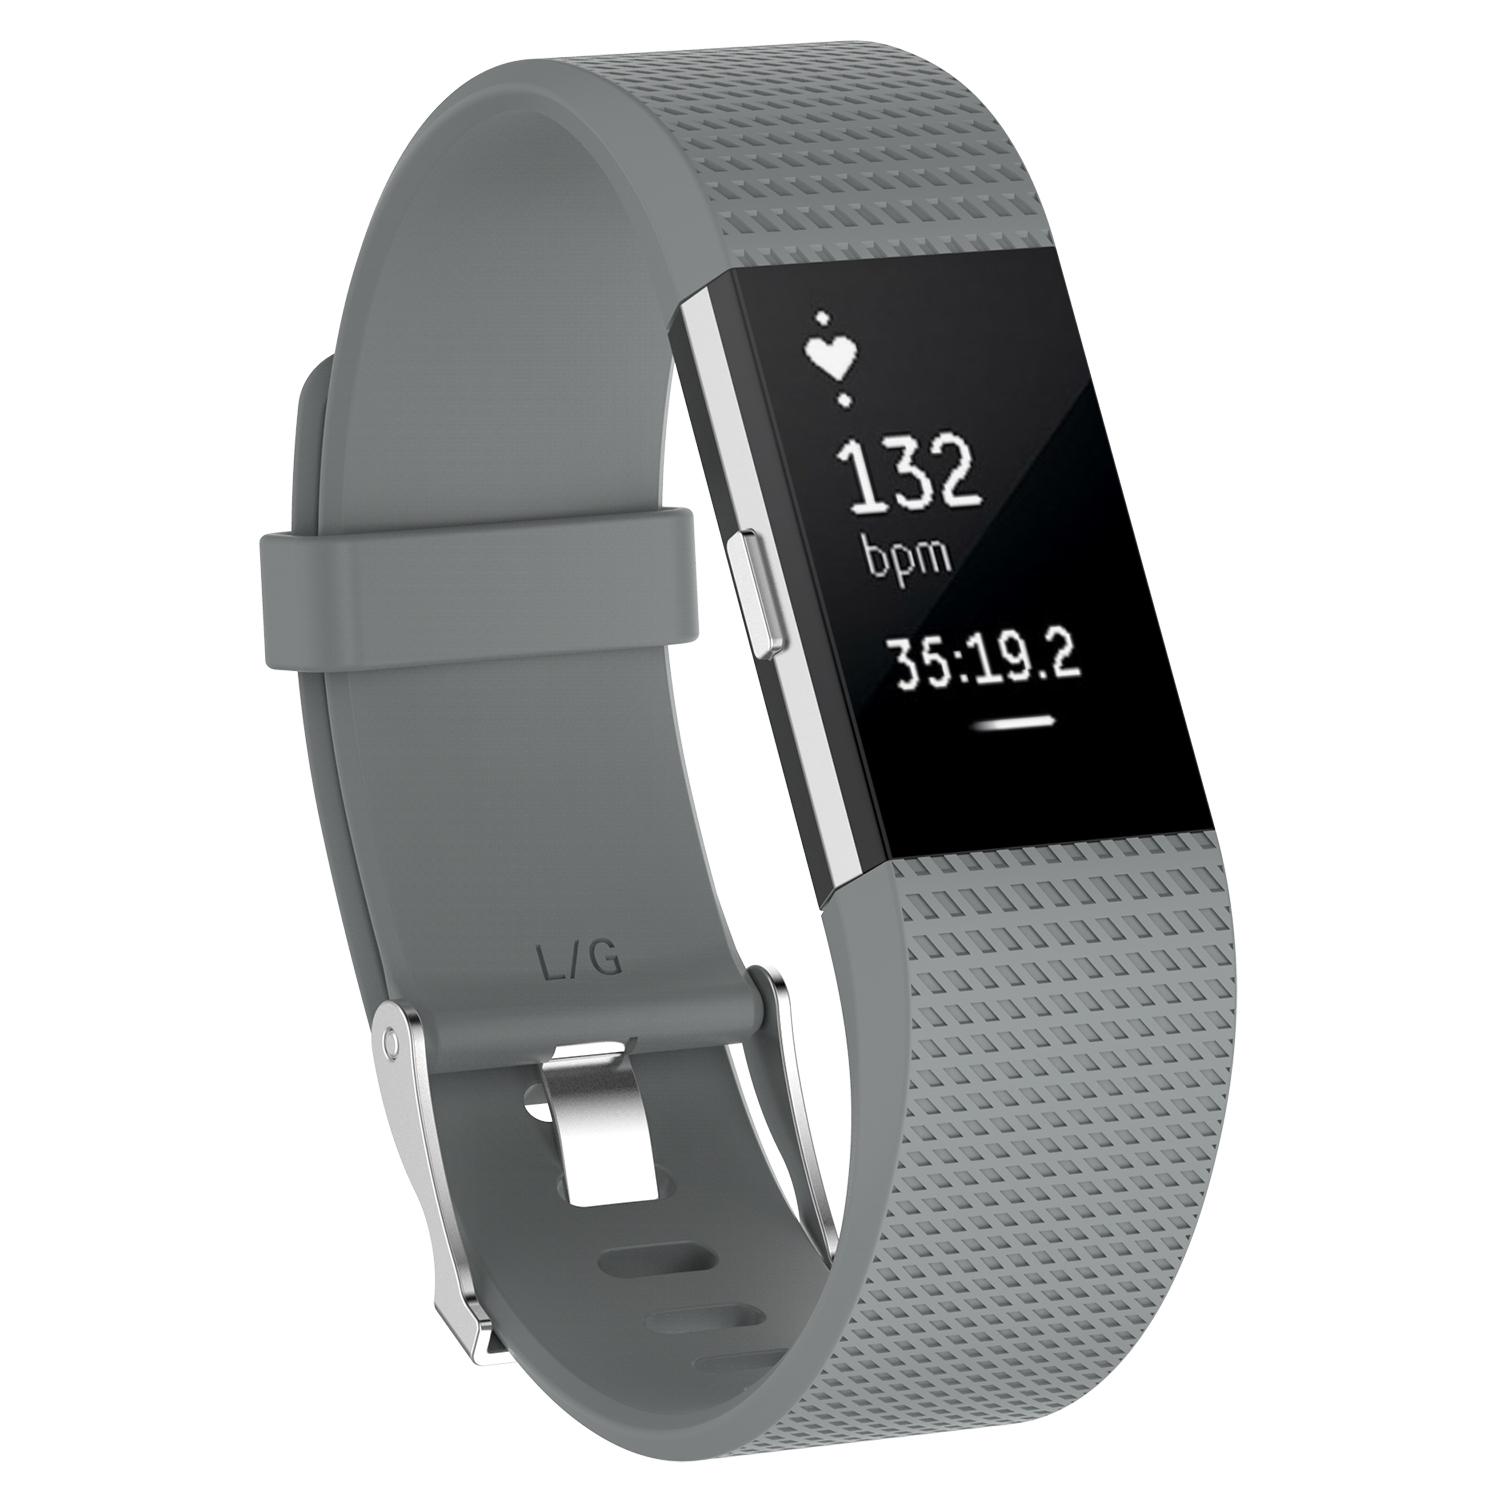 Replacement-Silicone-Wristband-Watch-Strap-Bands-Bracelet-For-Fitbit-Charge-2 thumbnail 23